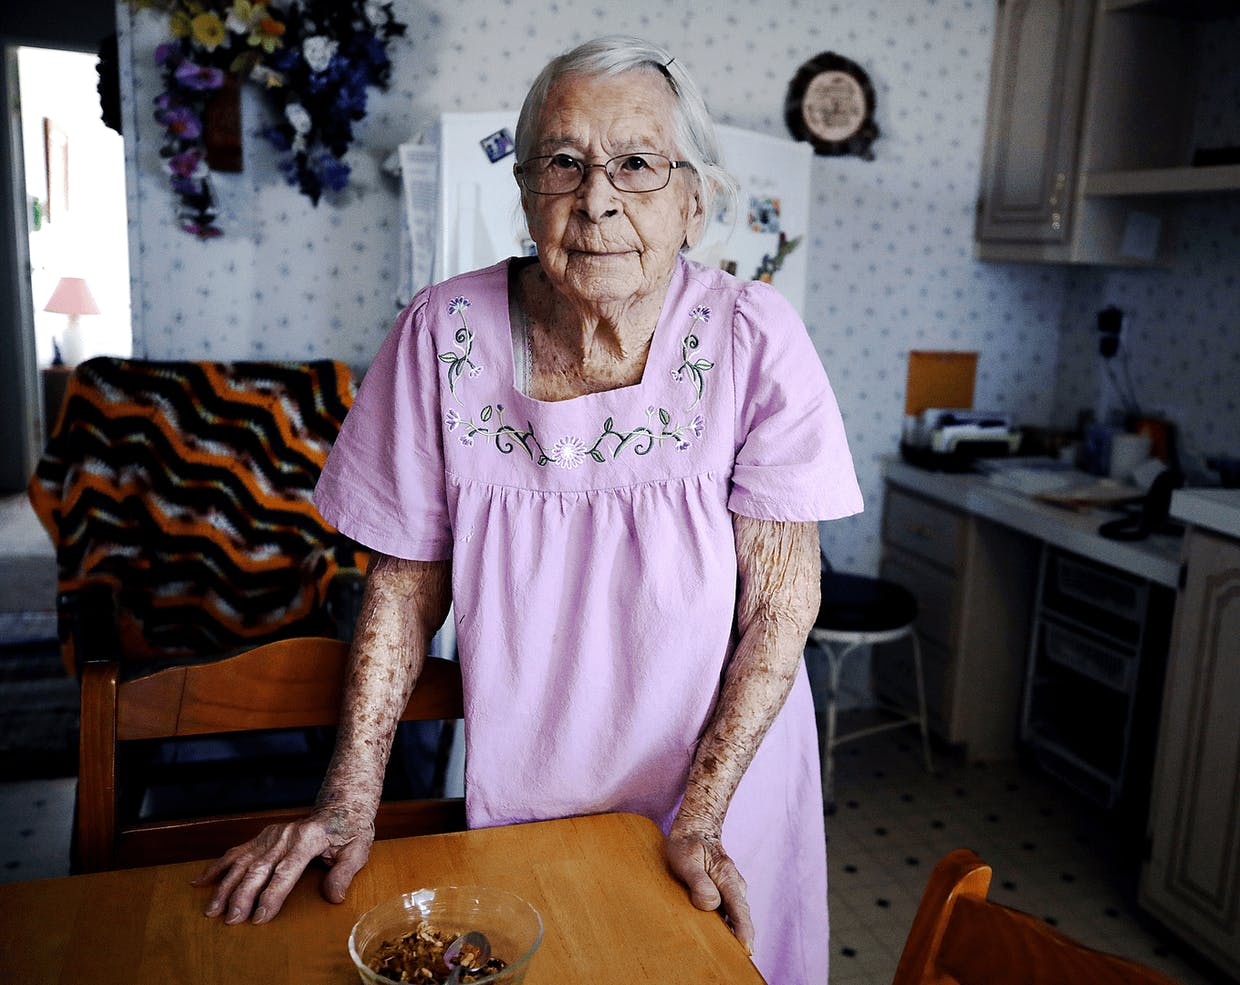 Local gardening legend Pearl O'Neill stands in her kitchen Thursday. O'Neill celebrated her 105th birthday in February.